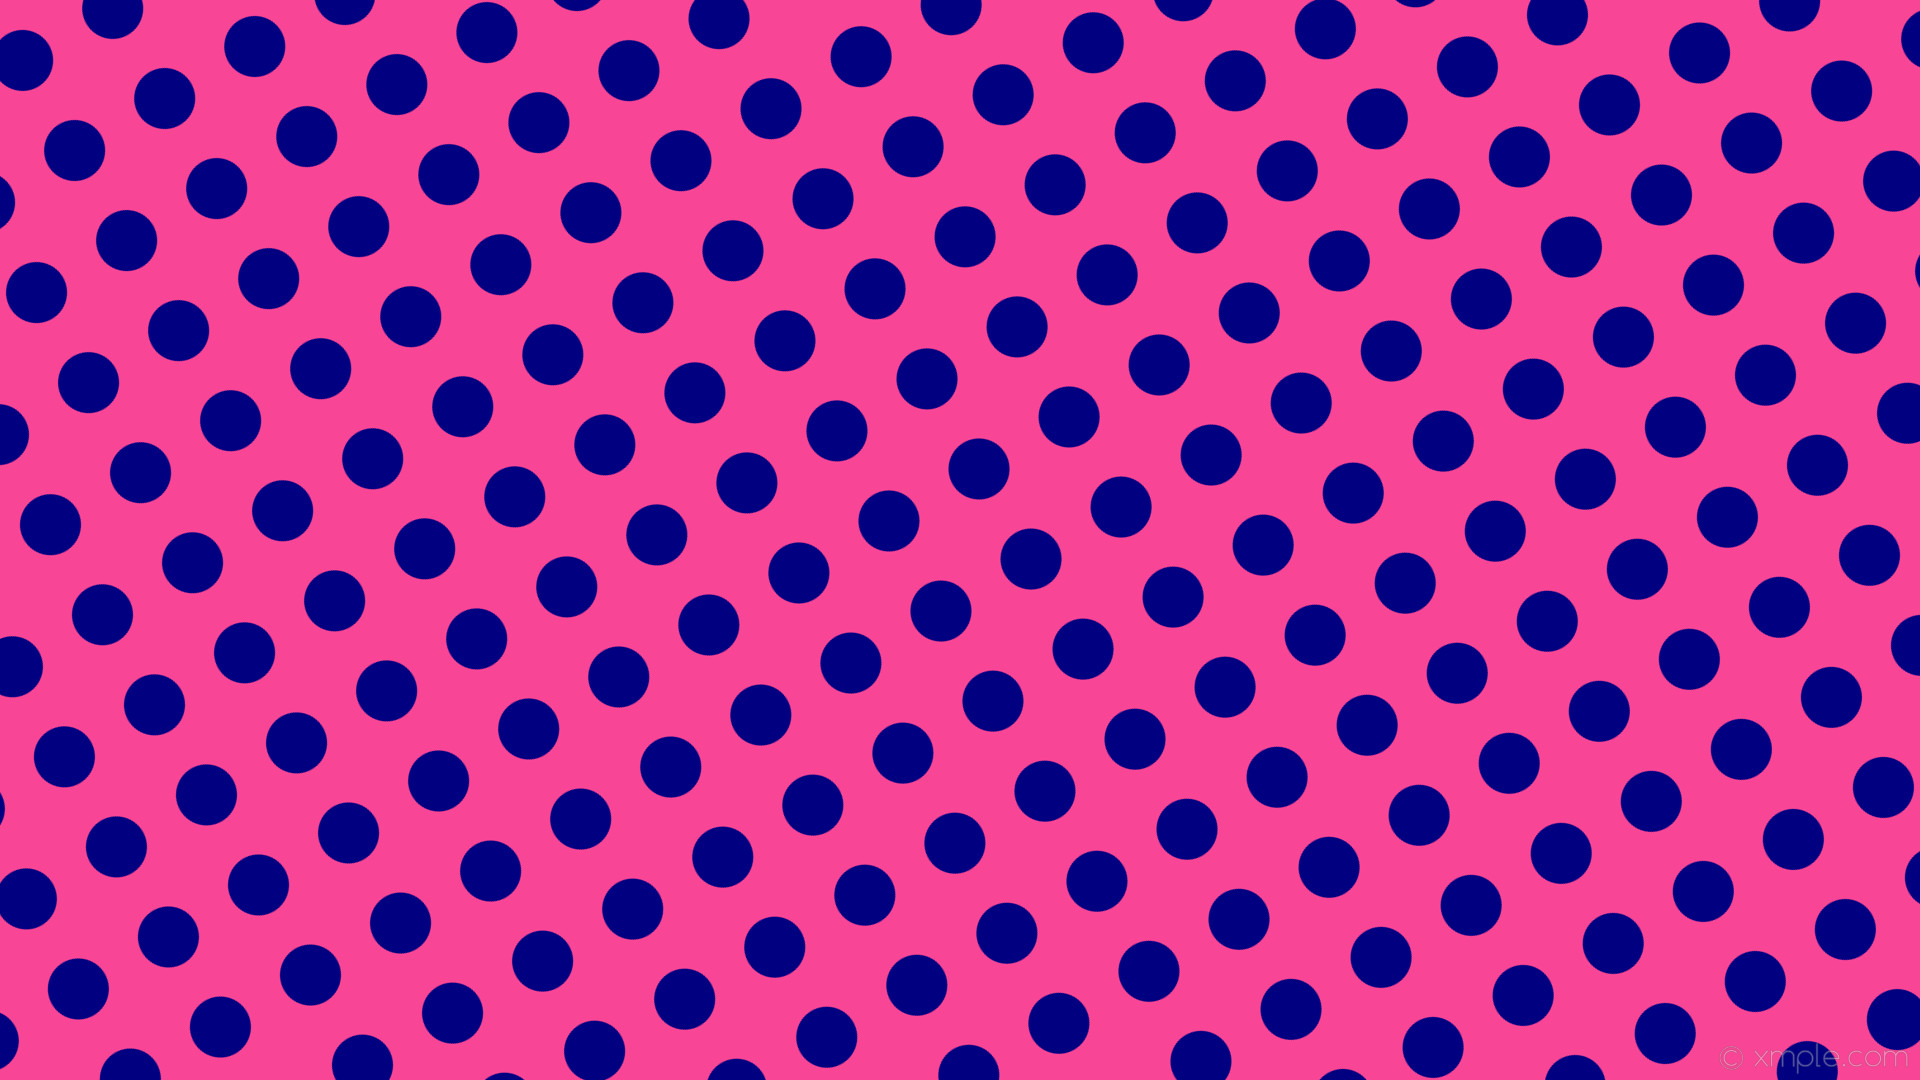 wallpaper polka dots spots blue pink navy #f84595 #000080 120° 61px 104px